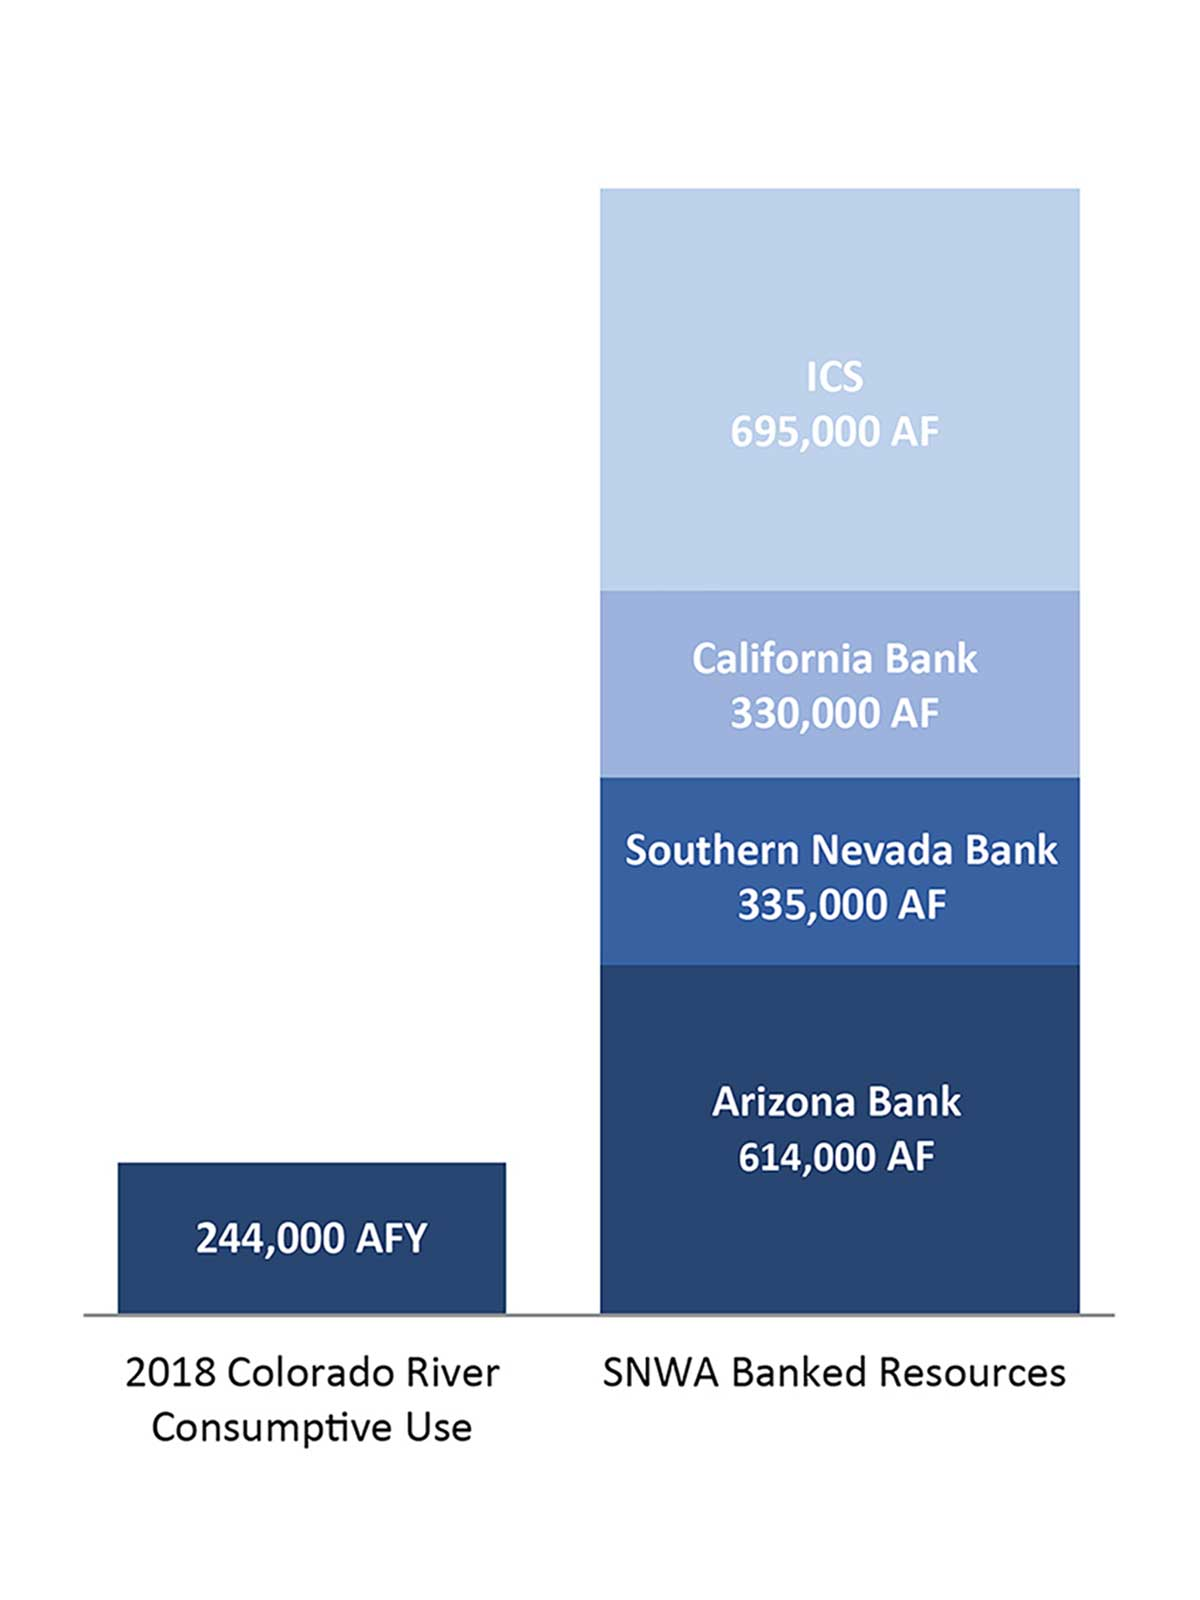 A bar chart showing the 2018 Colorado River consumptive use and banked resources